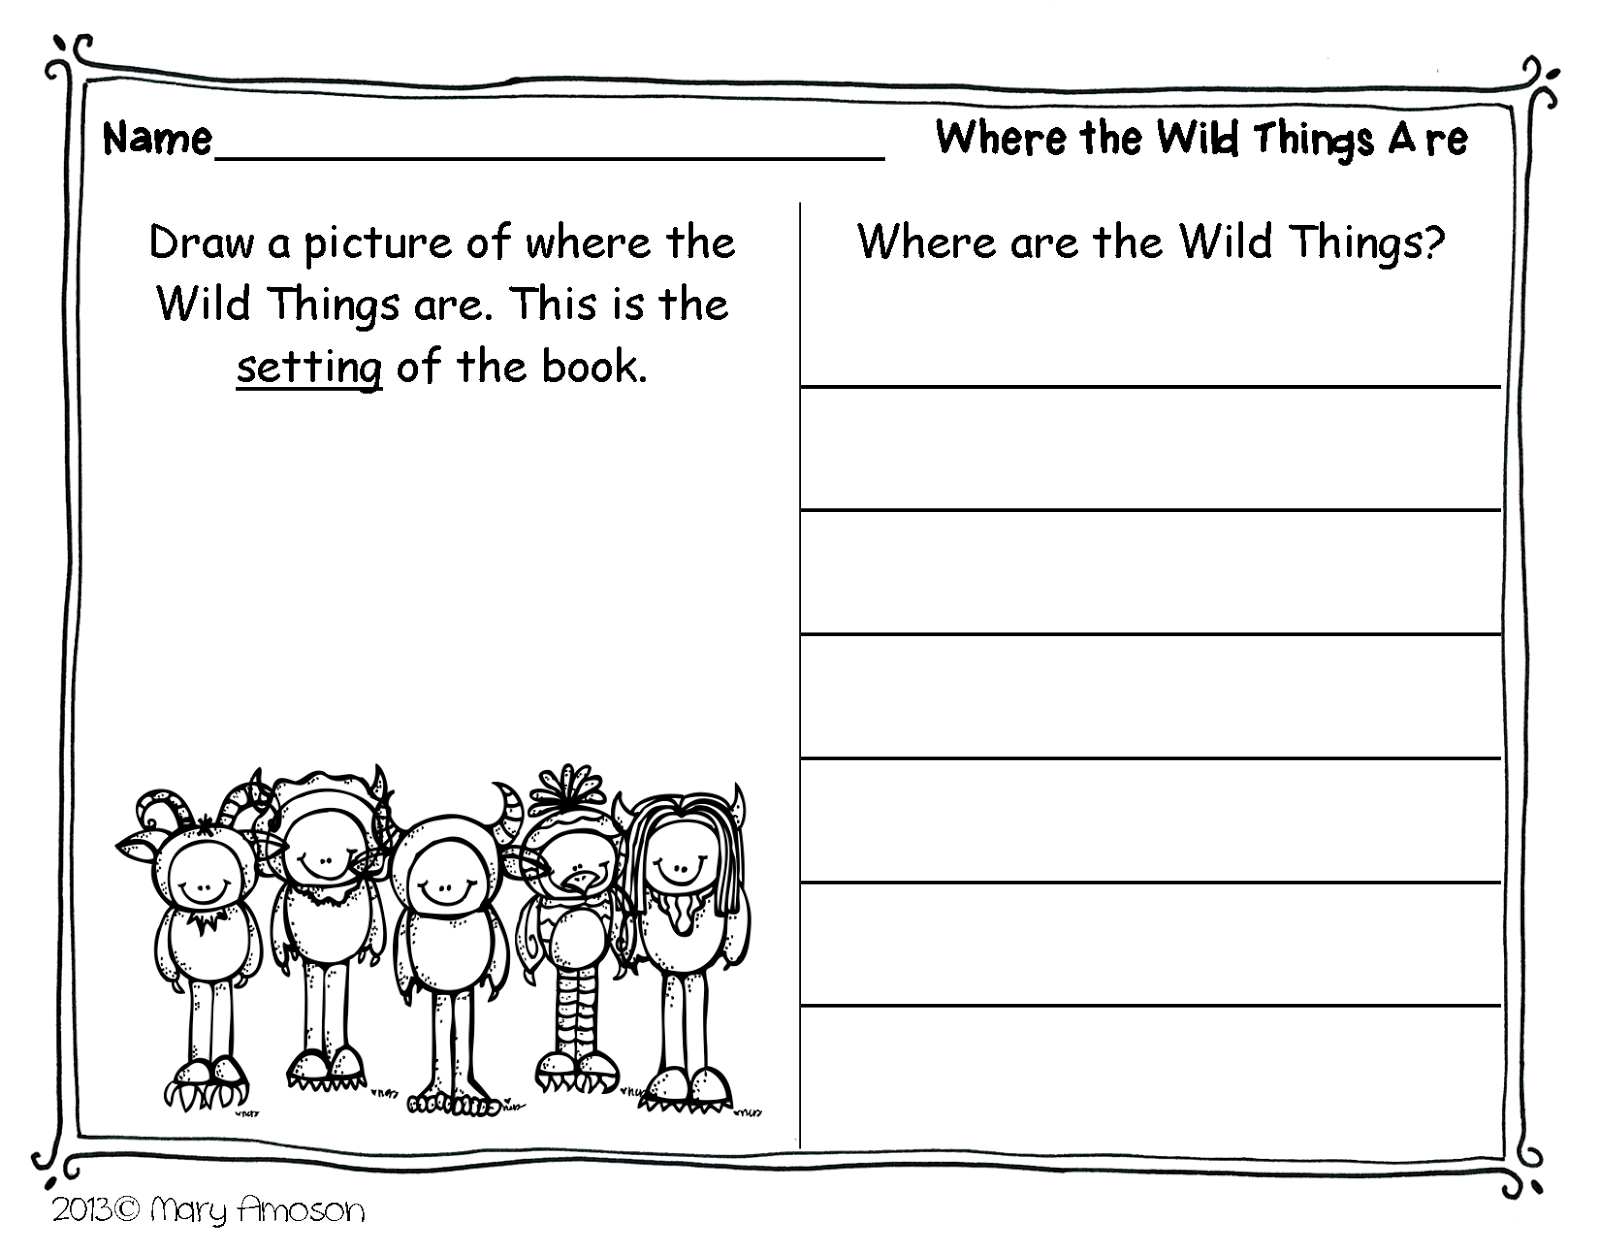 Where the Wild Things Are Worksheet - Twisty Noodle